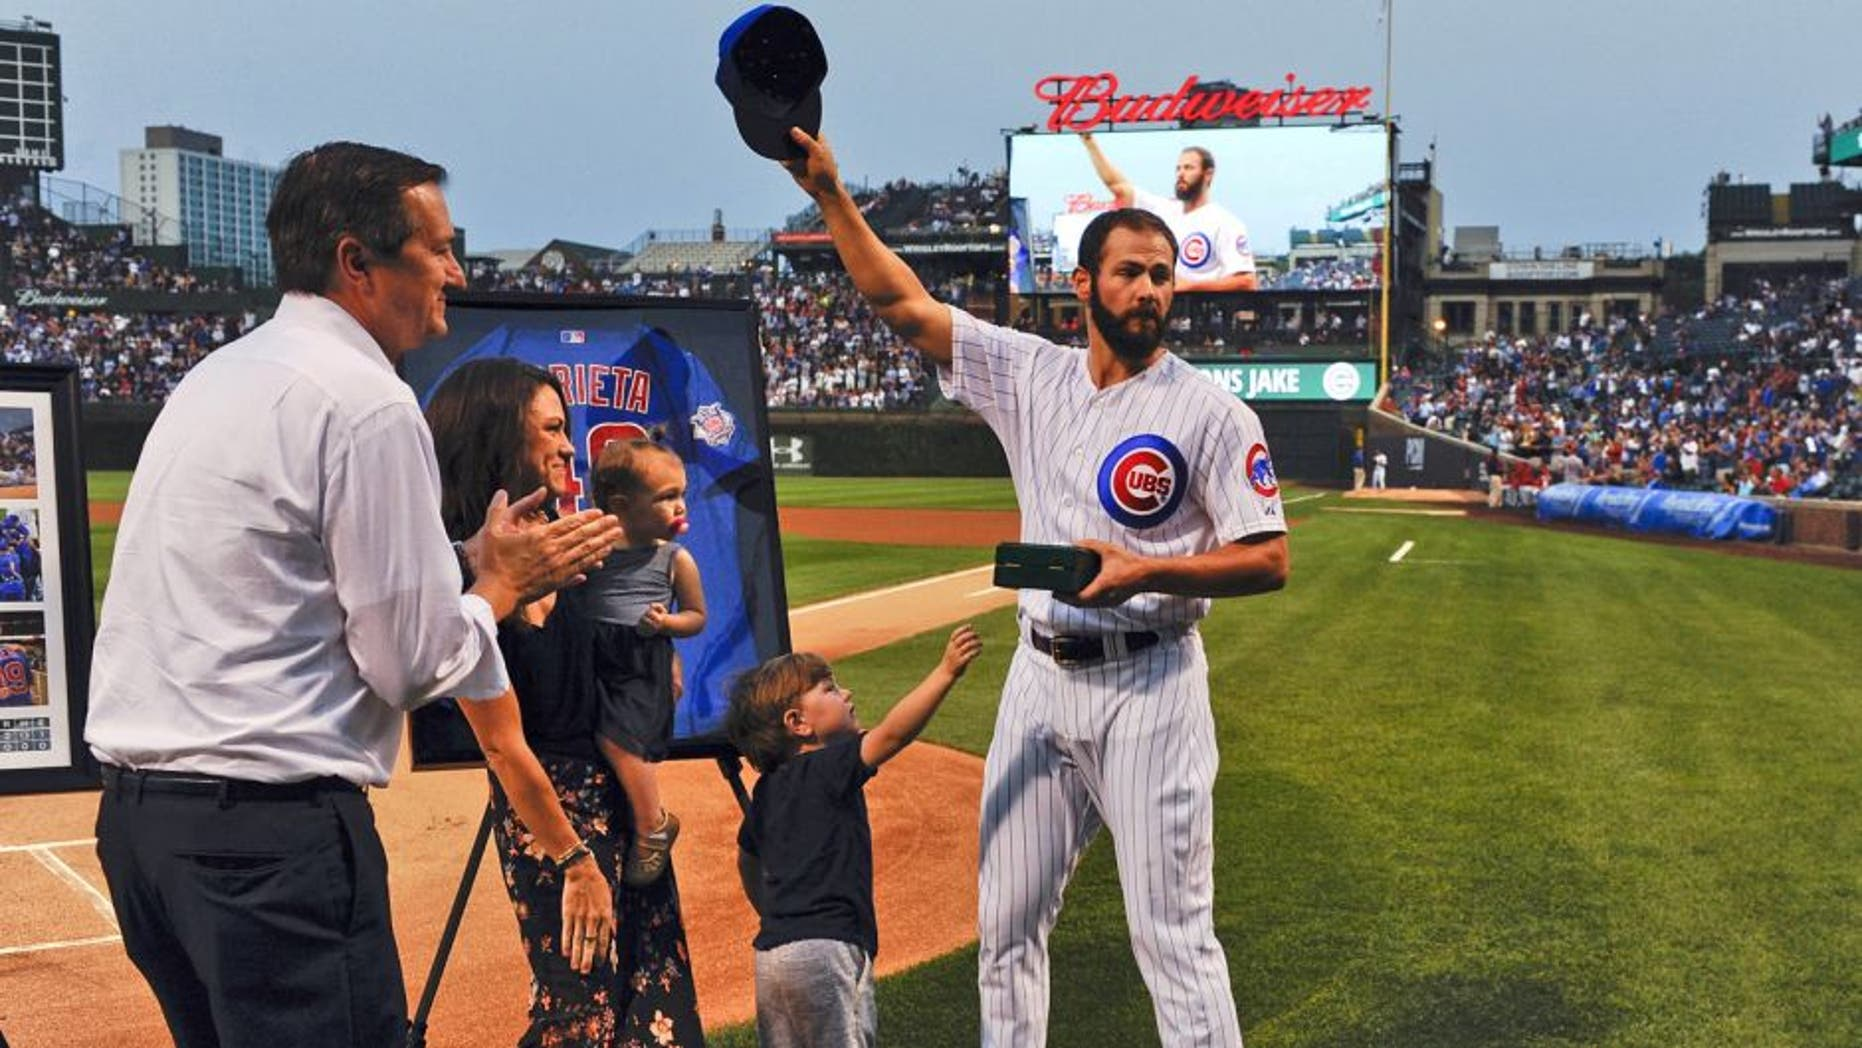 Aug 31, 2015; Chicago, IL, USA; Chicago Cubs starting pitcher Jake Arrieta (49), acknowledges the crowd while standing with his family, Cooper (son) and Palmer (daughter), Brittany Arrieta, his wife, and Chicago Cubs owner Tom Ricketts before the game against the Cincinnati Reds at Wrigley Field. Arrieta pitched a no-hitter the night before in Los Angeles. Mandatory Credit: Matt Marton-USA TODAY Sports